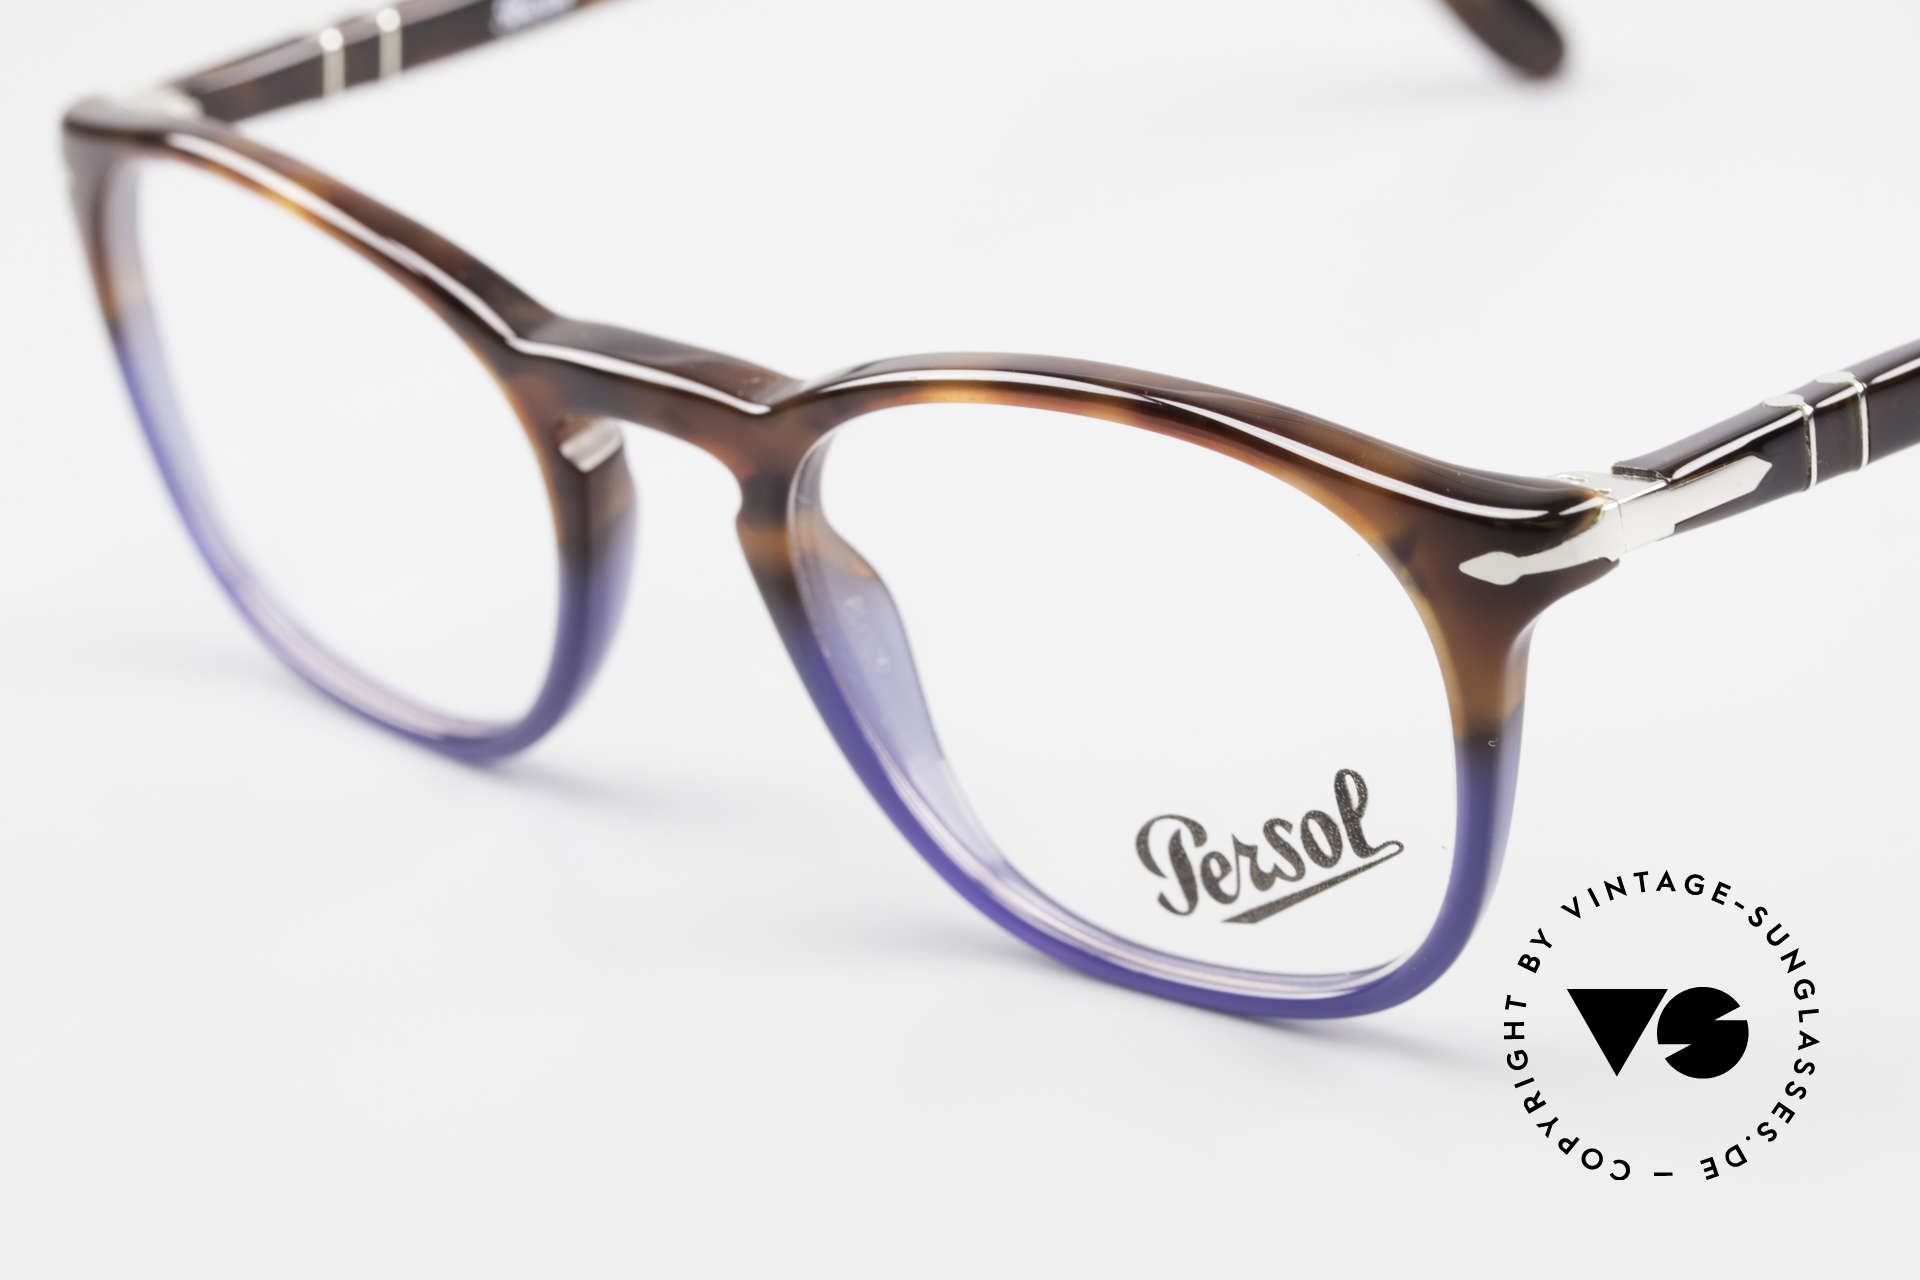 Persol 3007 Terrae Oceano Edition Small, reissue of the old vintage Persol RATTI models, Made for Men and Women